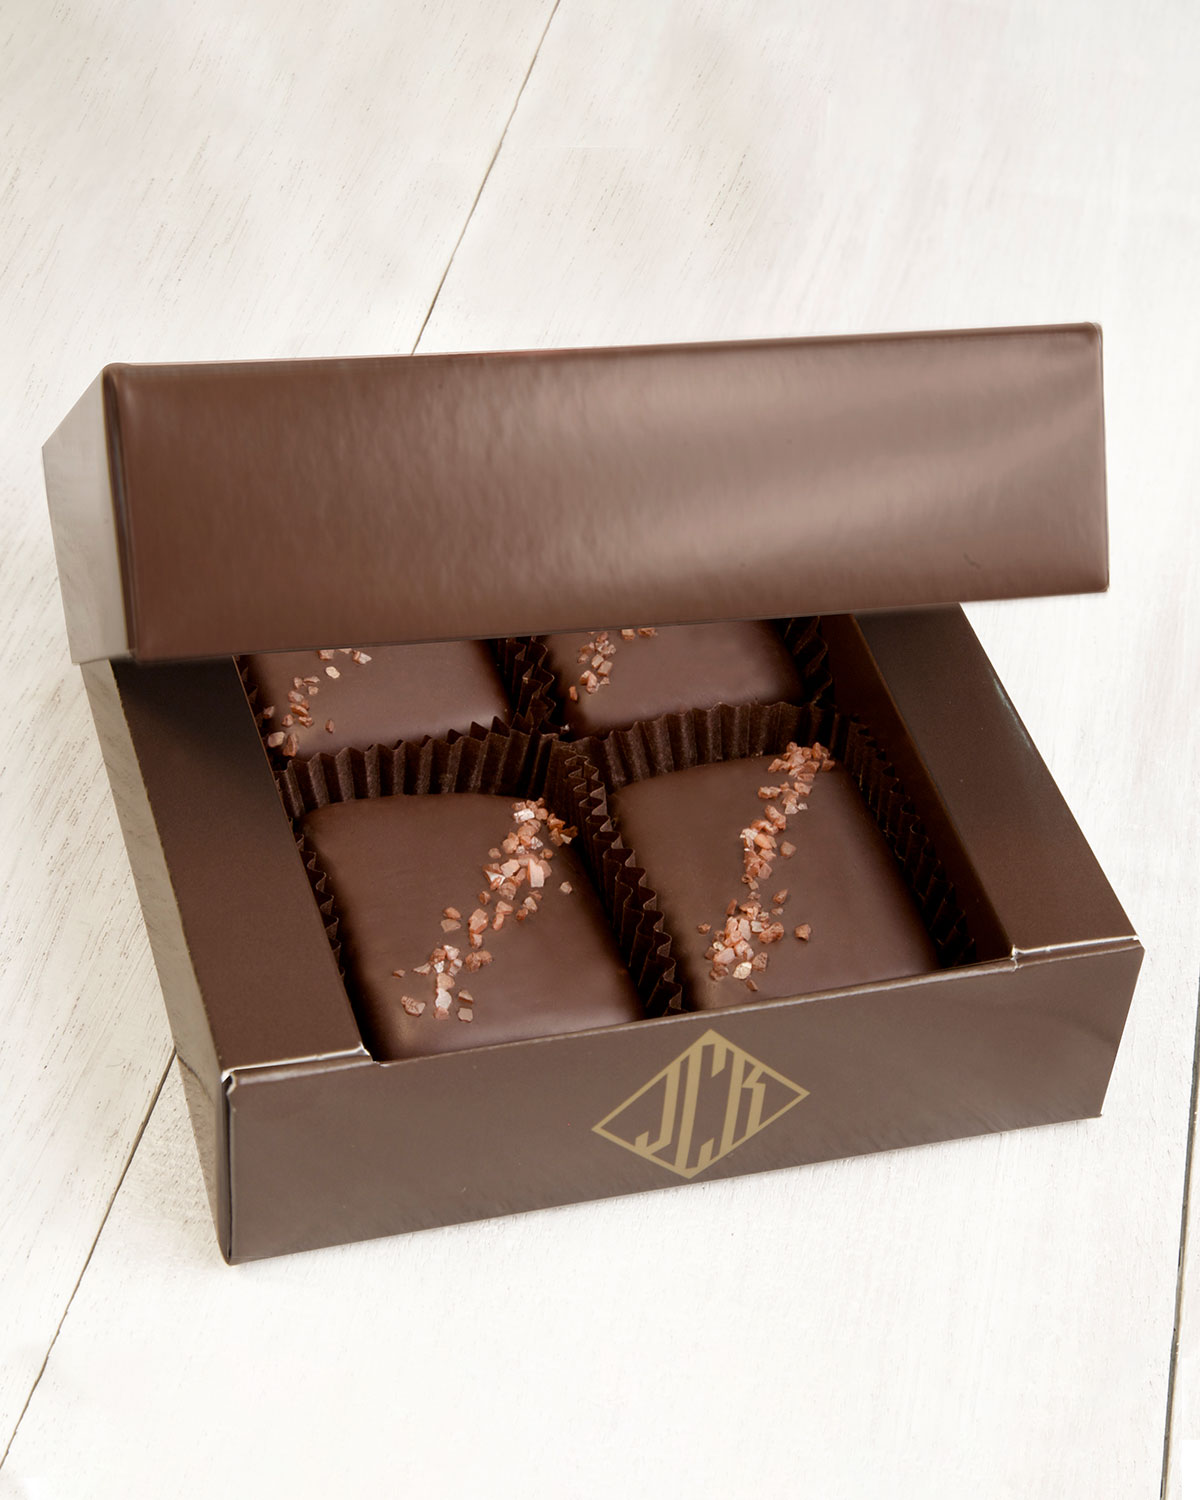 John Kelly Chocolates 4-Piece Semi-Sweet Chocolate Truffle Fudge Bites